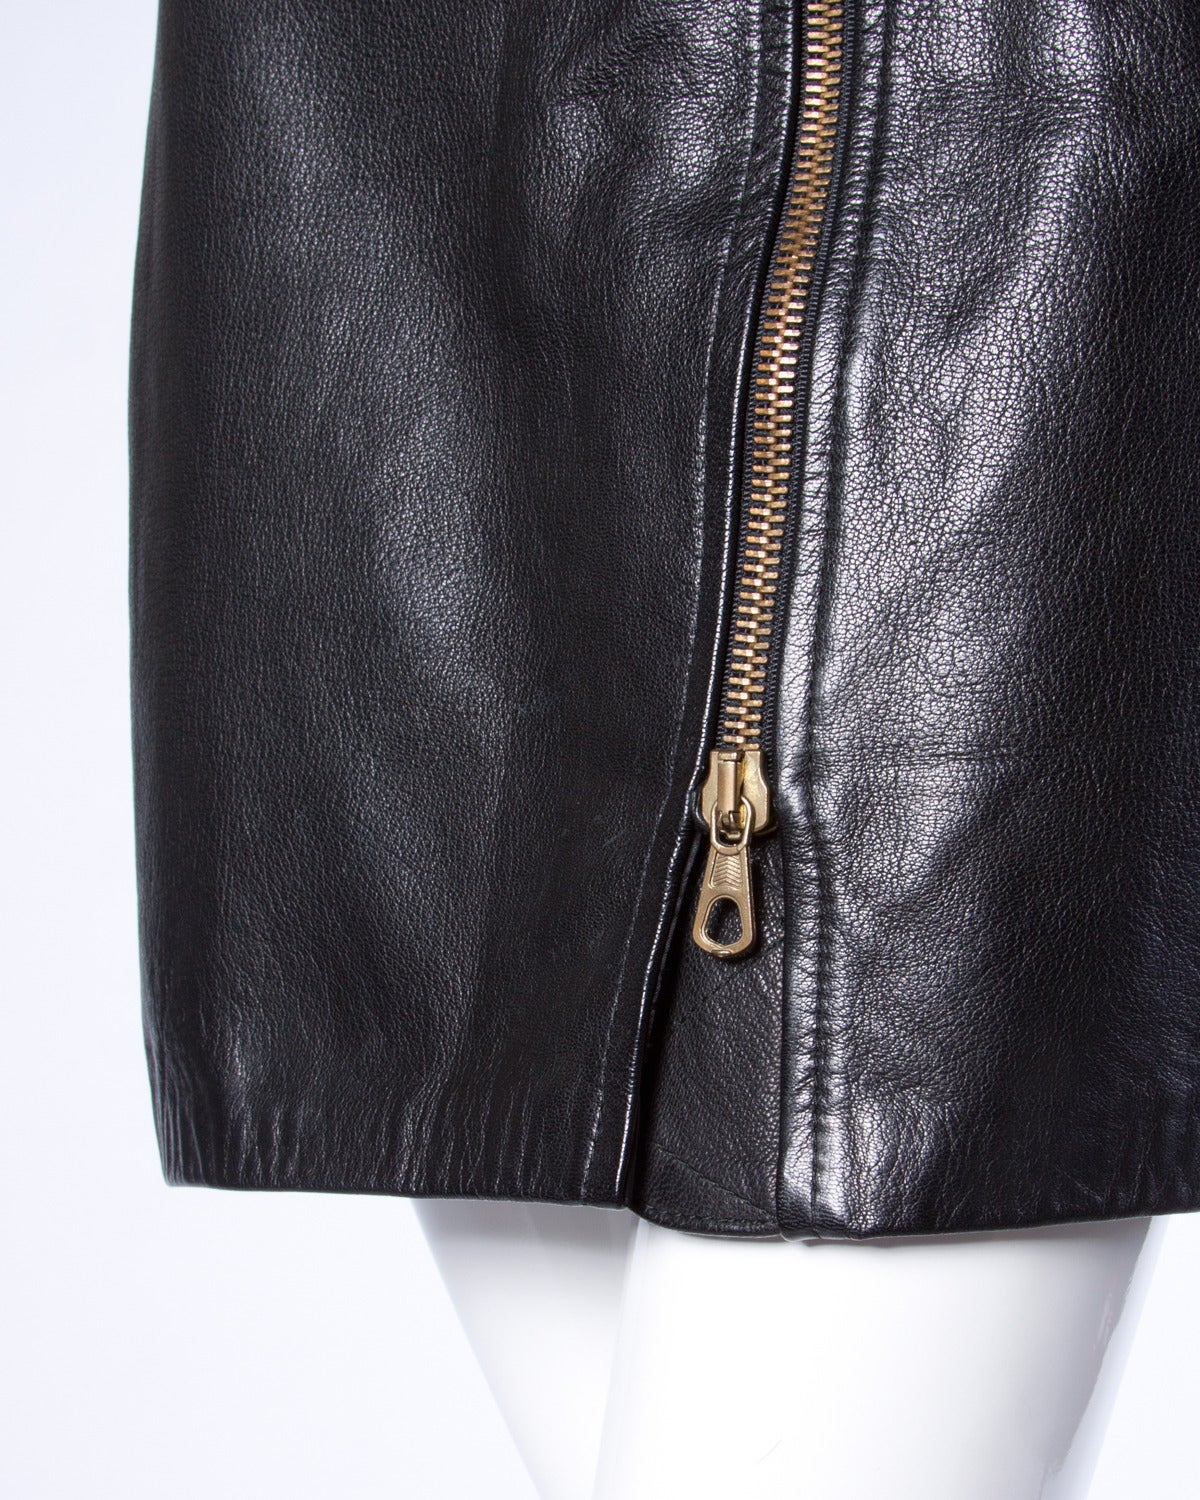 Moschino Vintage 1990s 90s Black Leather Skirt with Heart Belt Buckle 6